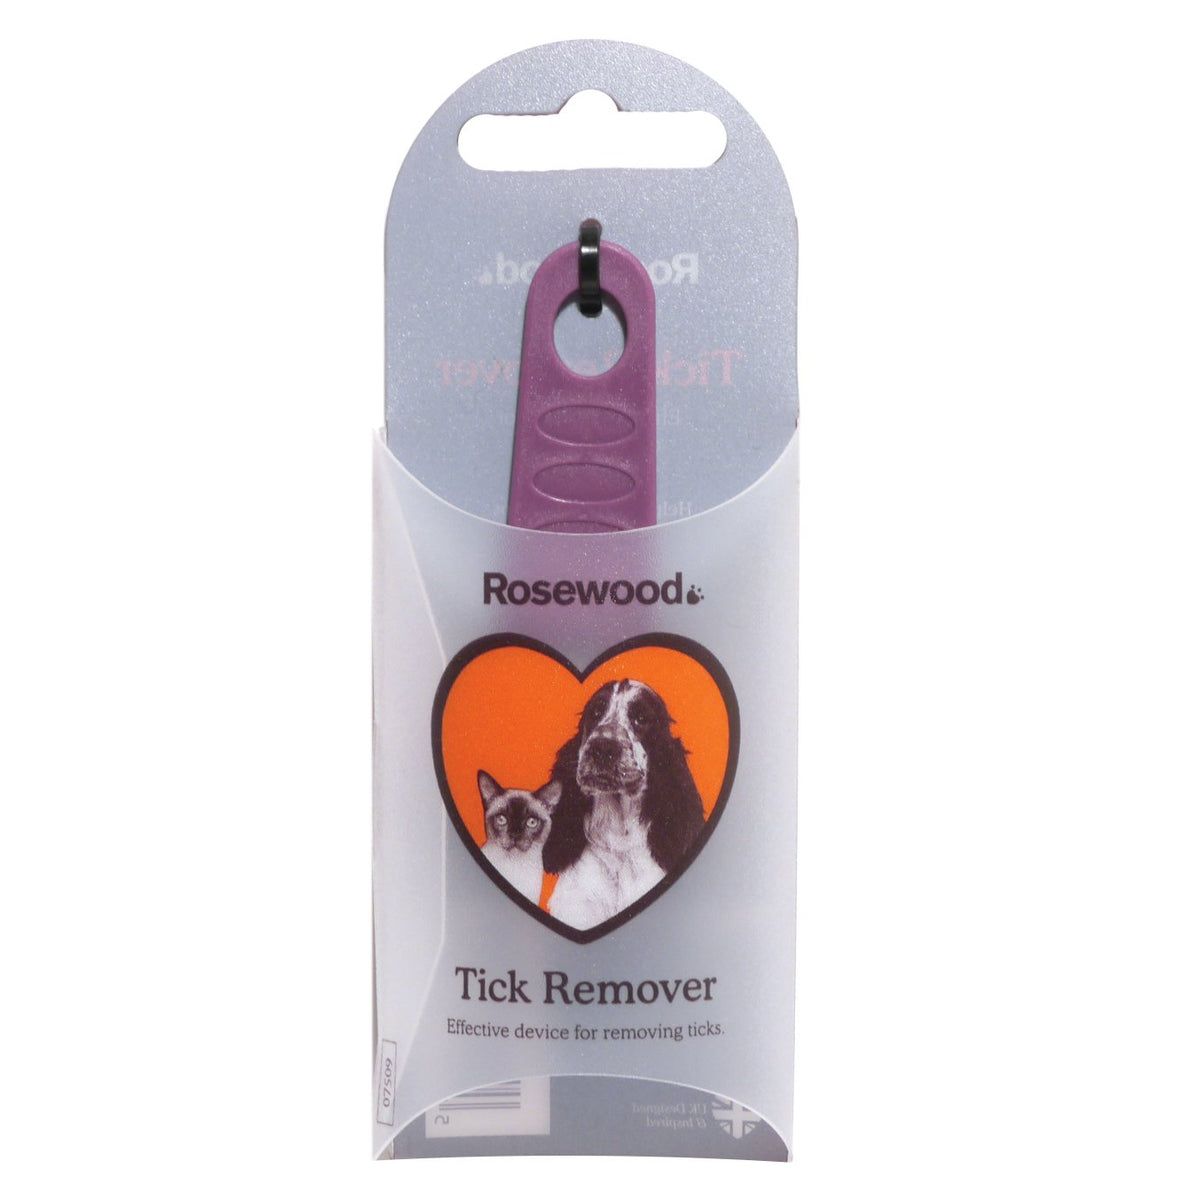 Rosewood Salon Grooming Tick Remover for pets